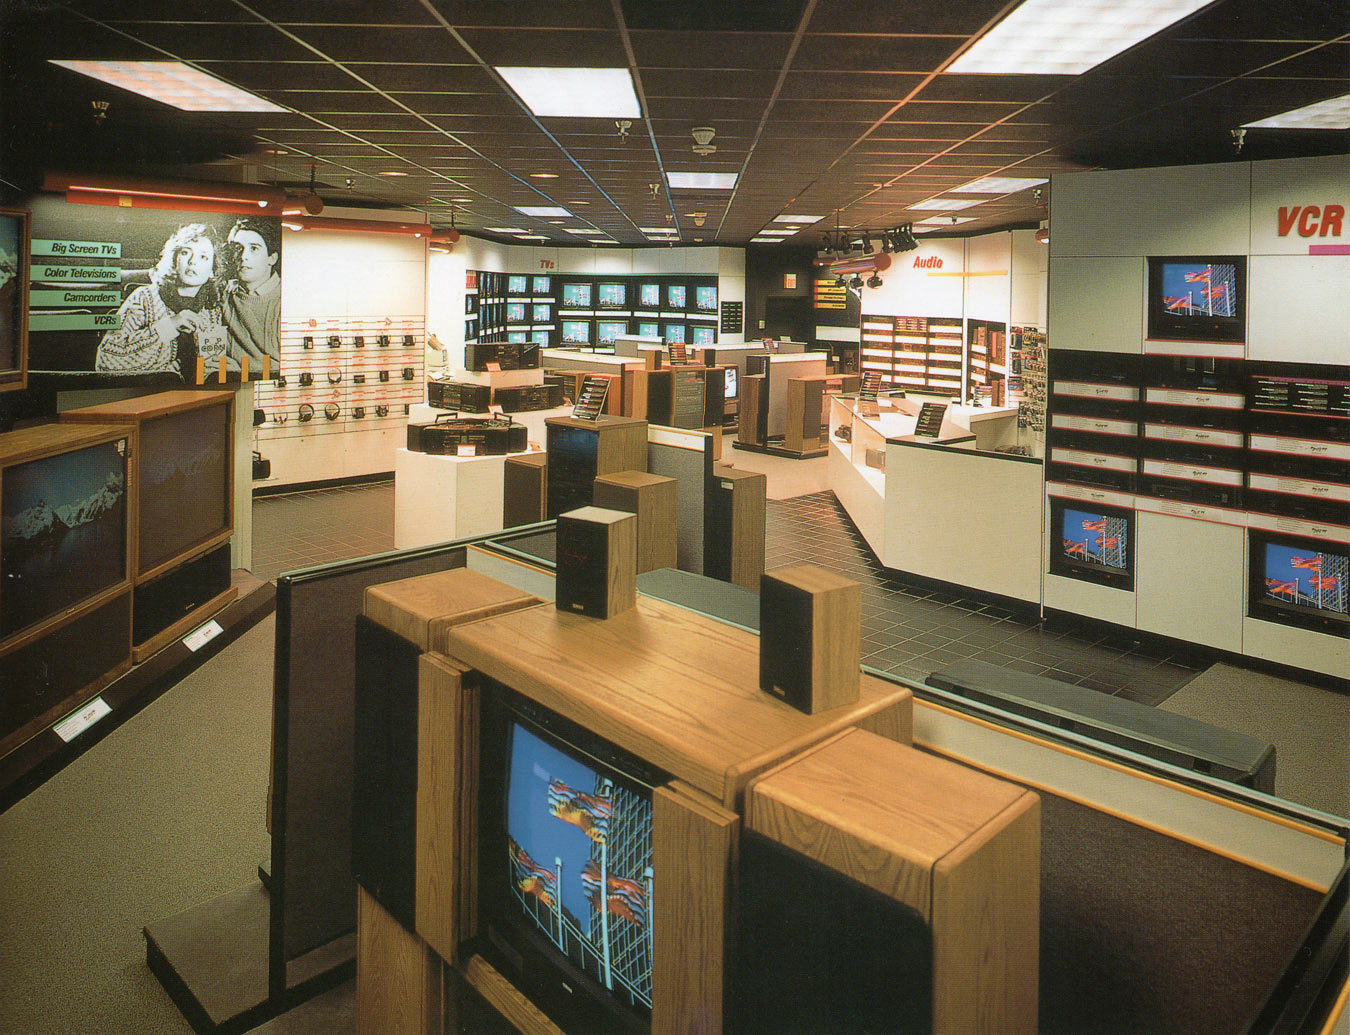 Video Concepts Store Layout